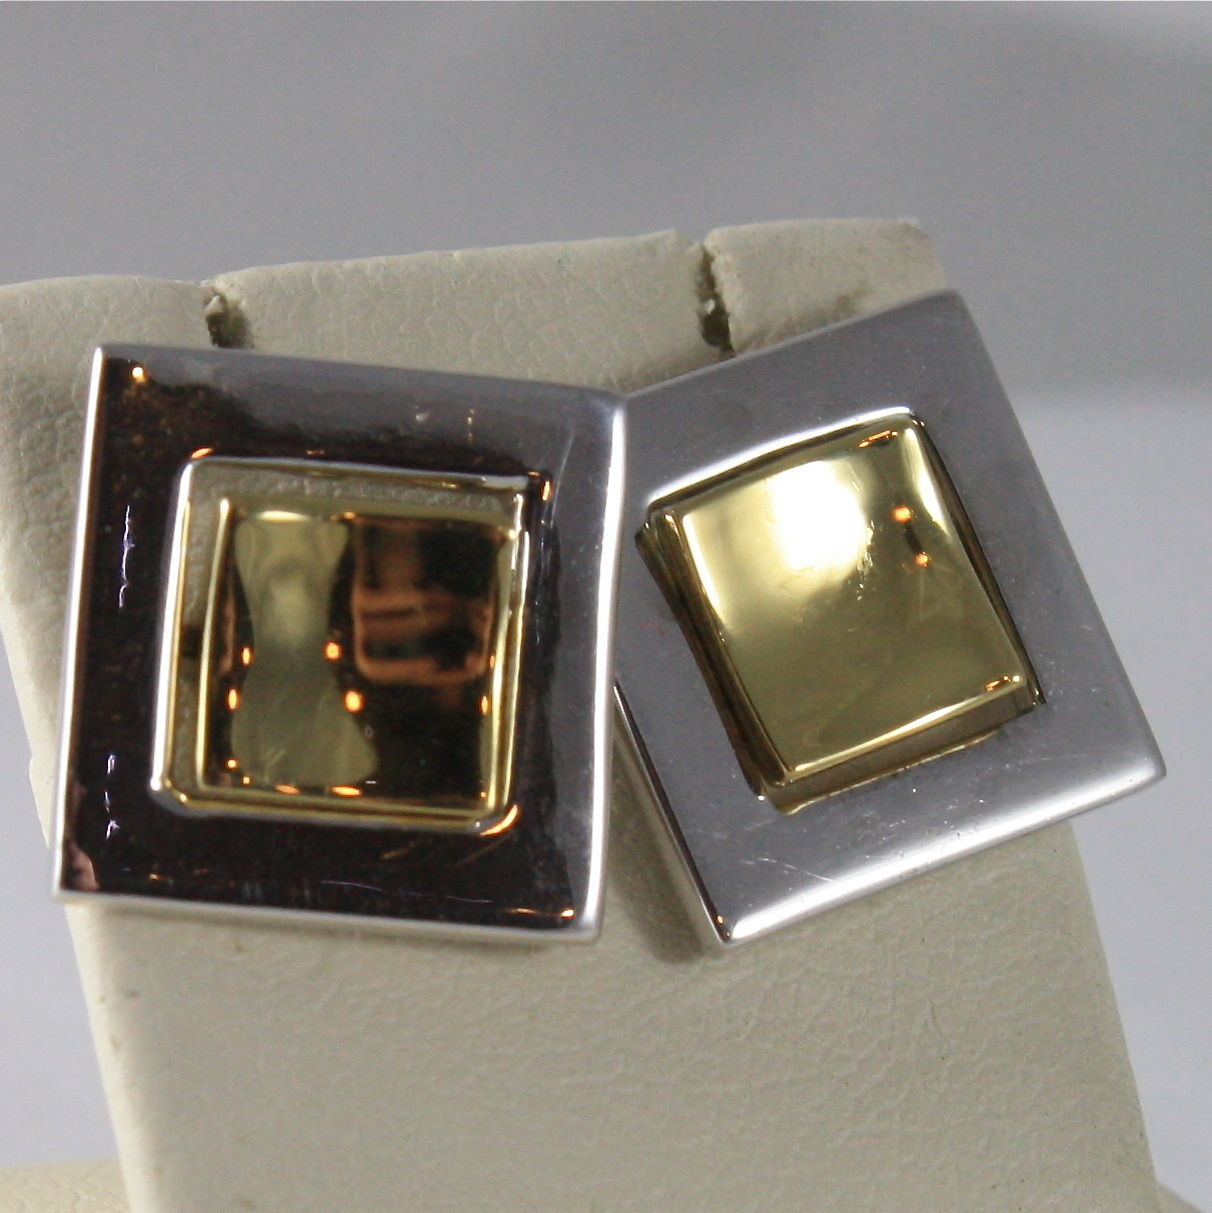 SOLID 18K WHITE AND YELLOW GOLD PENDANT EARRINGS, DOUBLE SQUARE, MADE IN ITALY